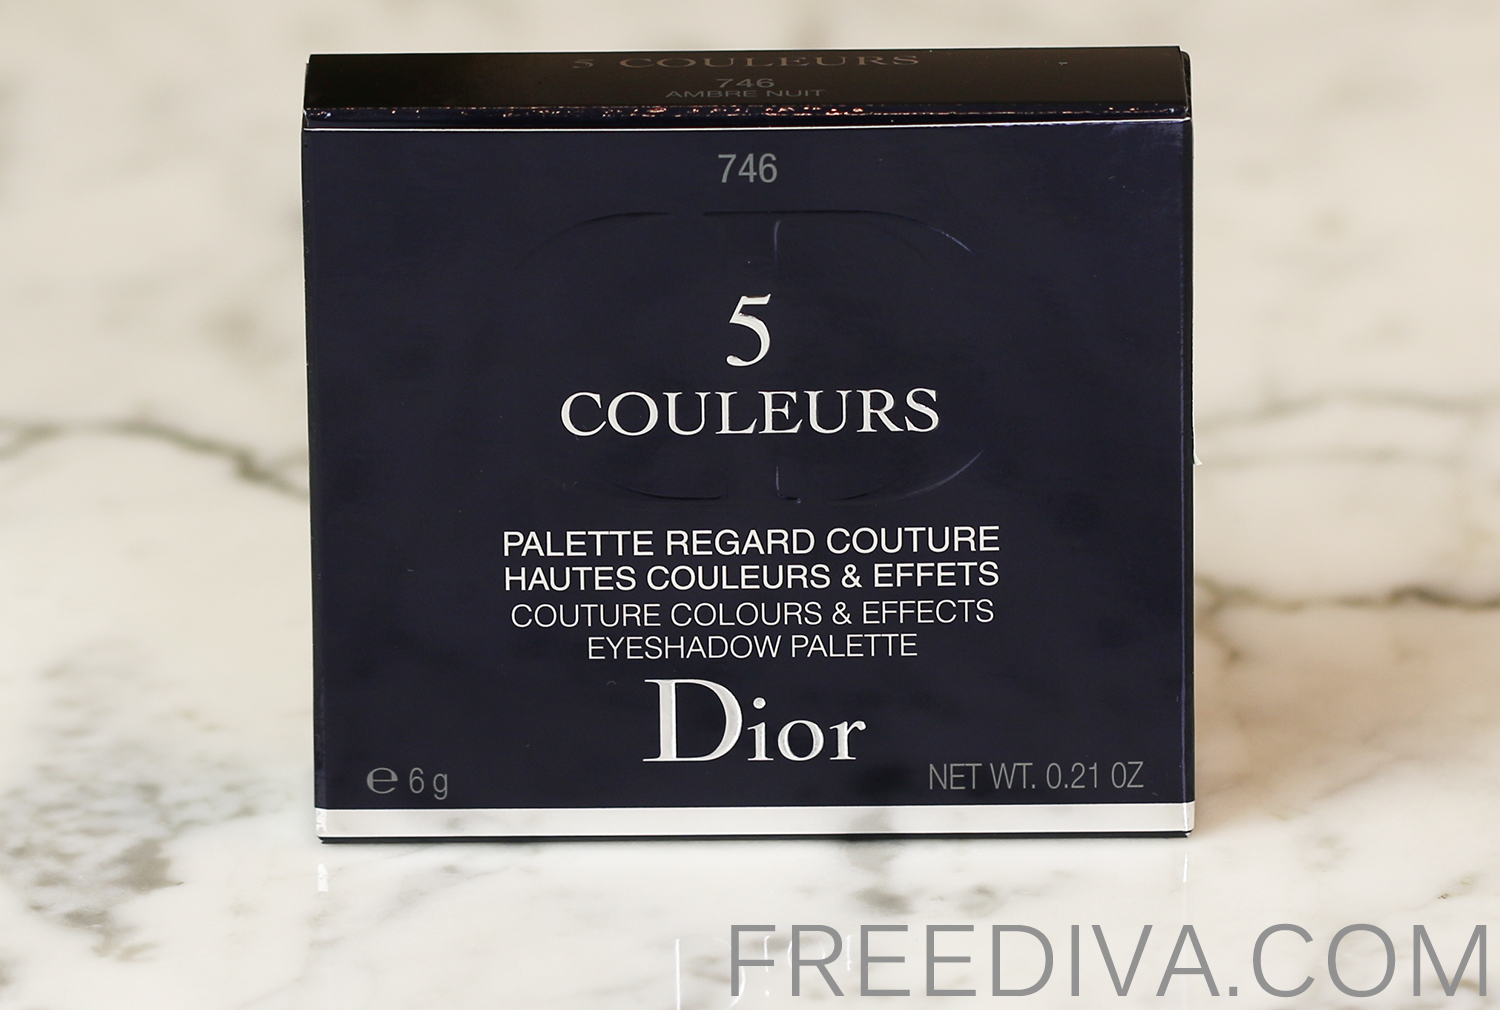 Dior 5 Couleurs Eyeshadow Palette 746 Ambre Nuit Tie Dye Collection